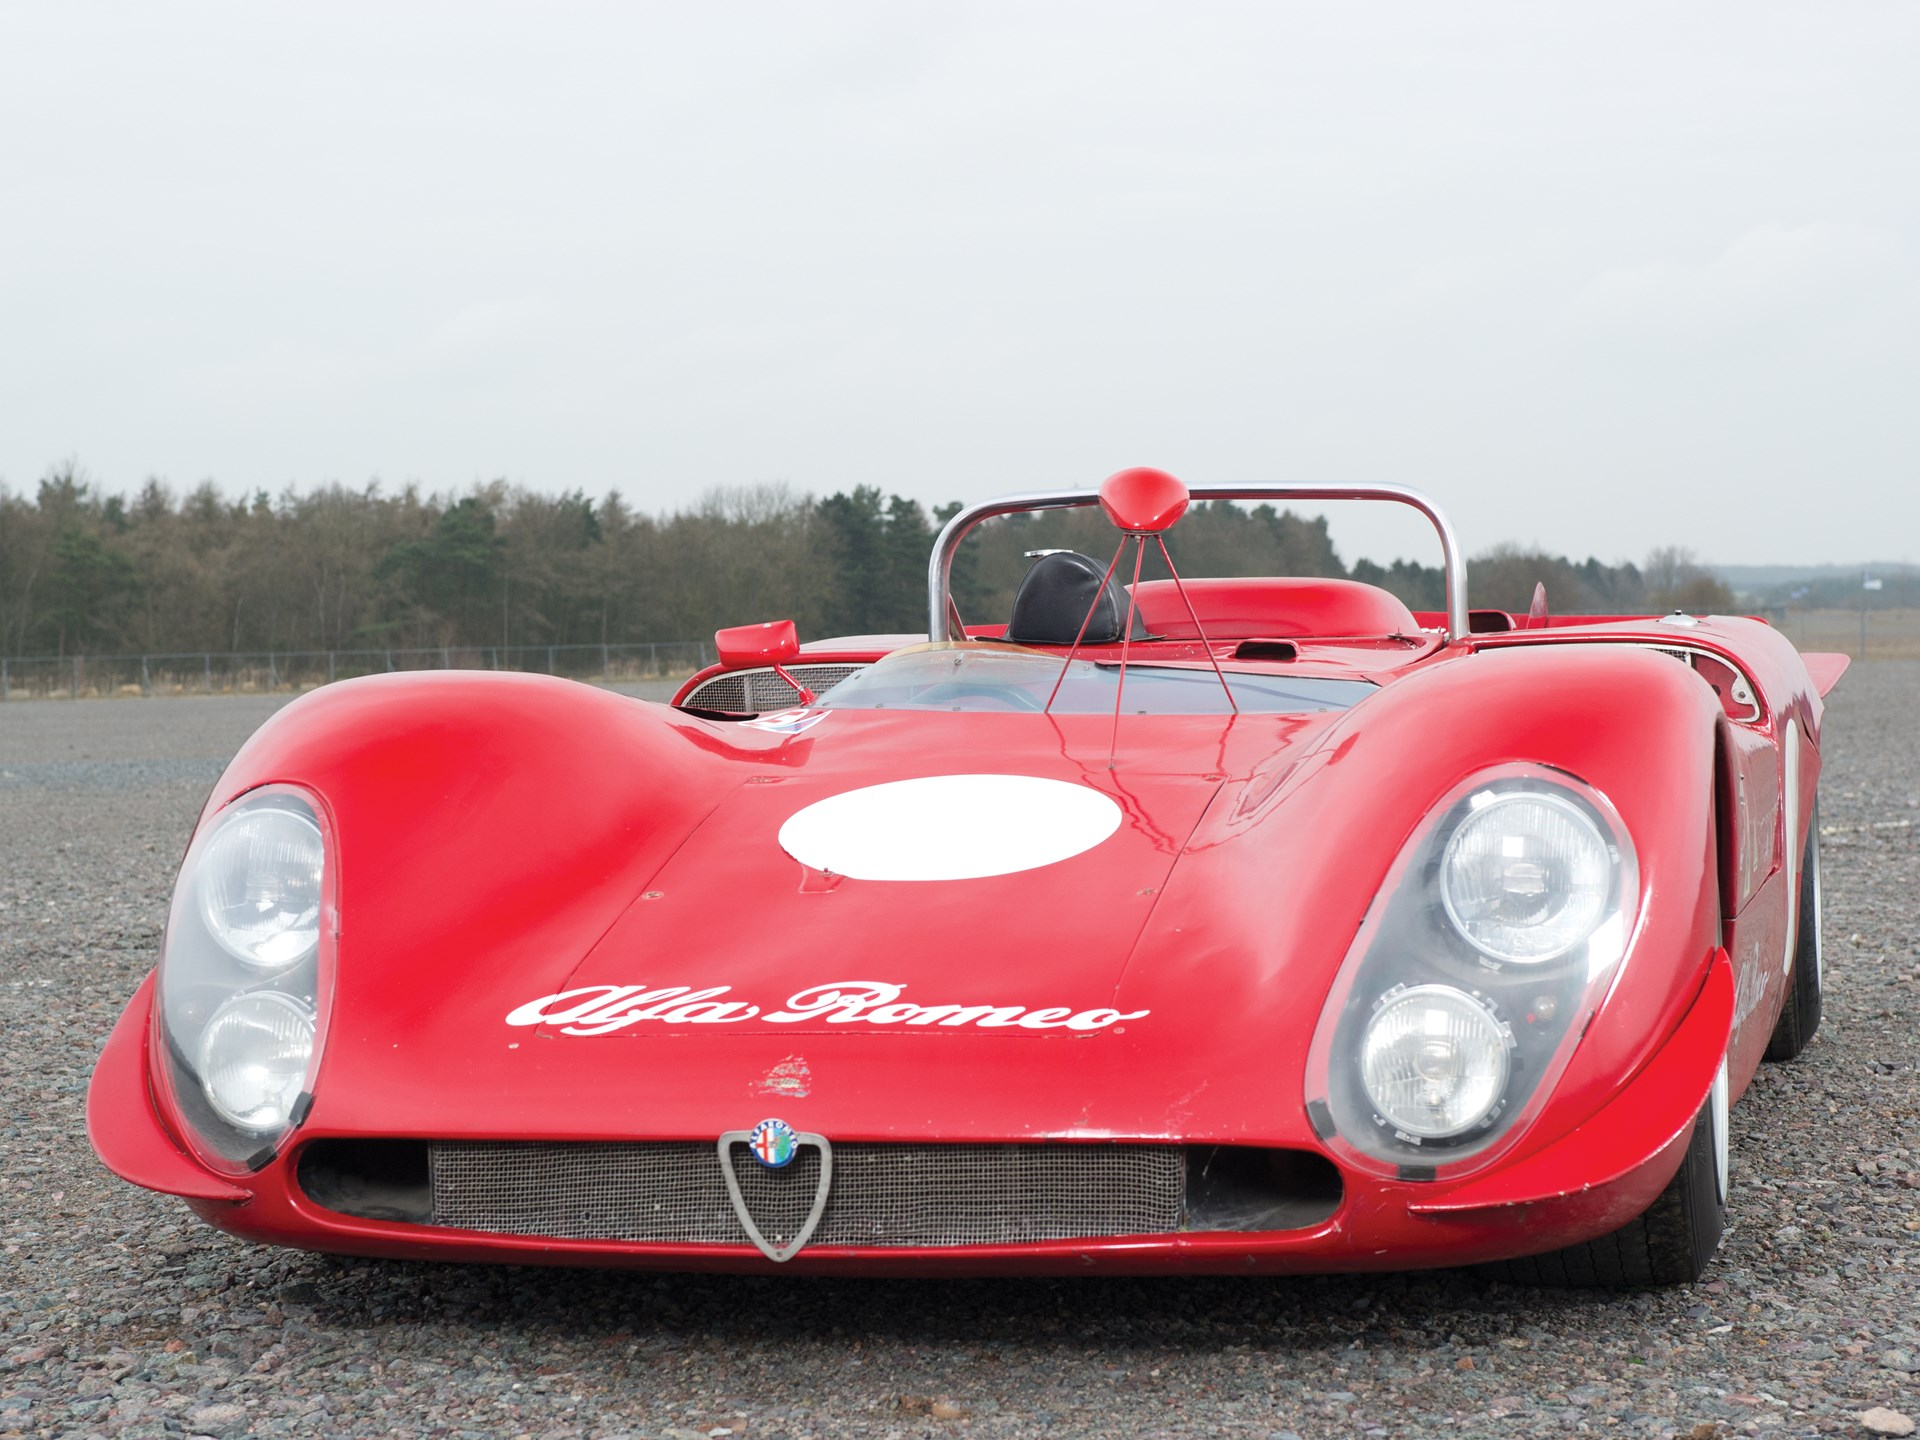 Wiring Harness 1969 Alfa Romeo Trusted Diagram Rm Sothebys Tipo 33 3 Sports Racer Monaco 2012 Beautiful